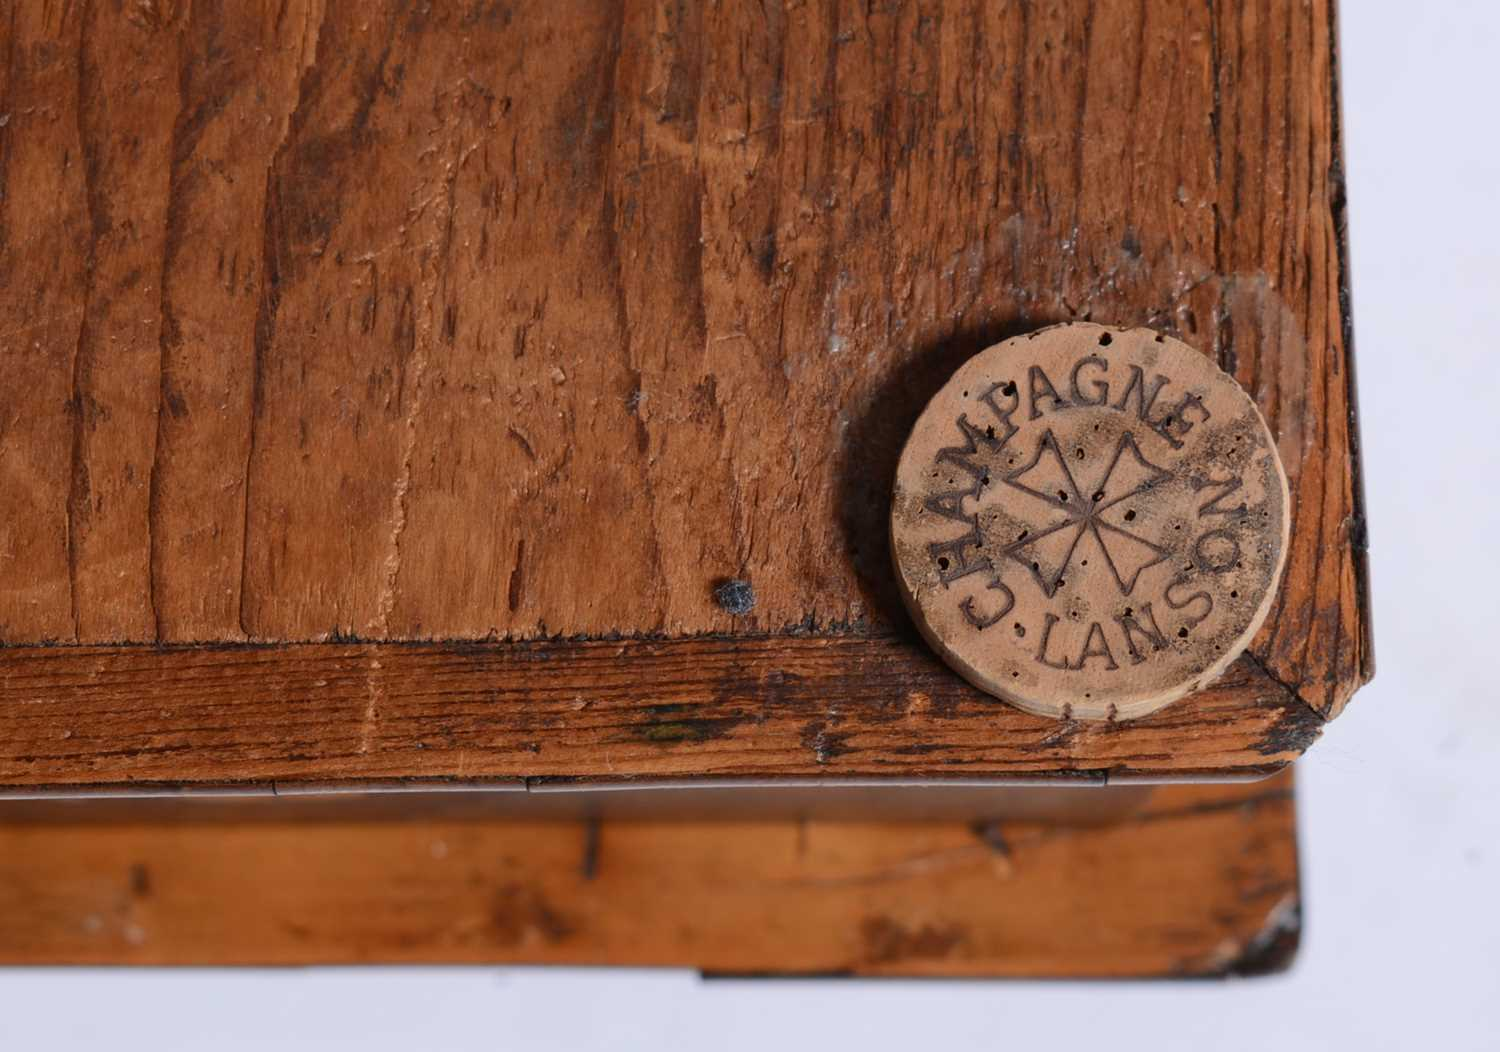 18th Century Dutch marquetry and oyster veneered lace box - Image 7 of 9